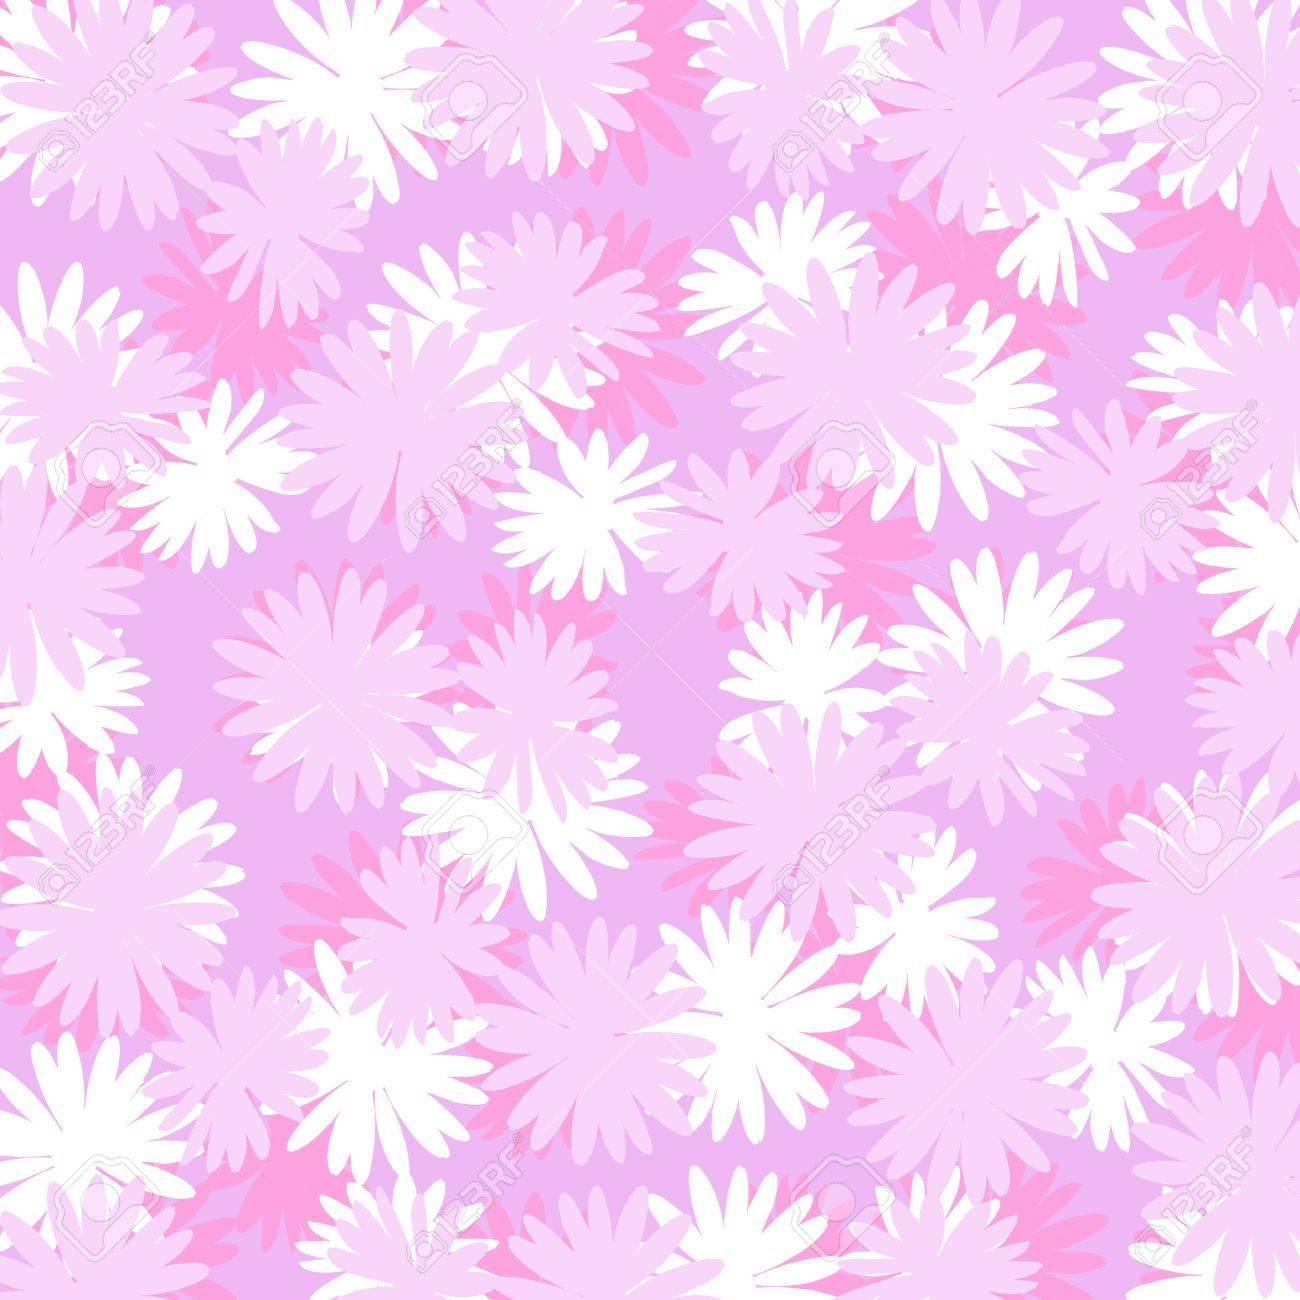 flowery image in pinks as background stock photo picture and